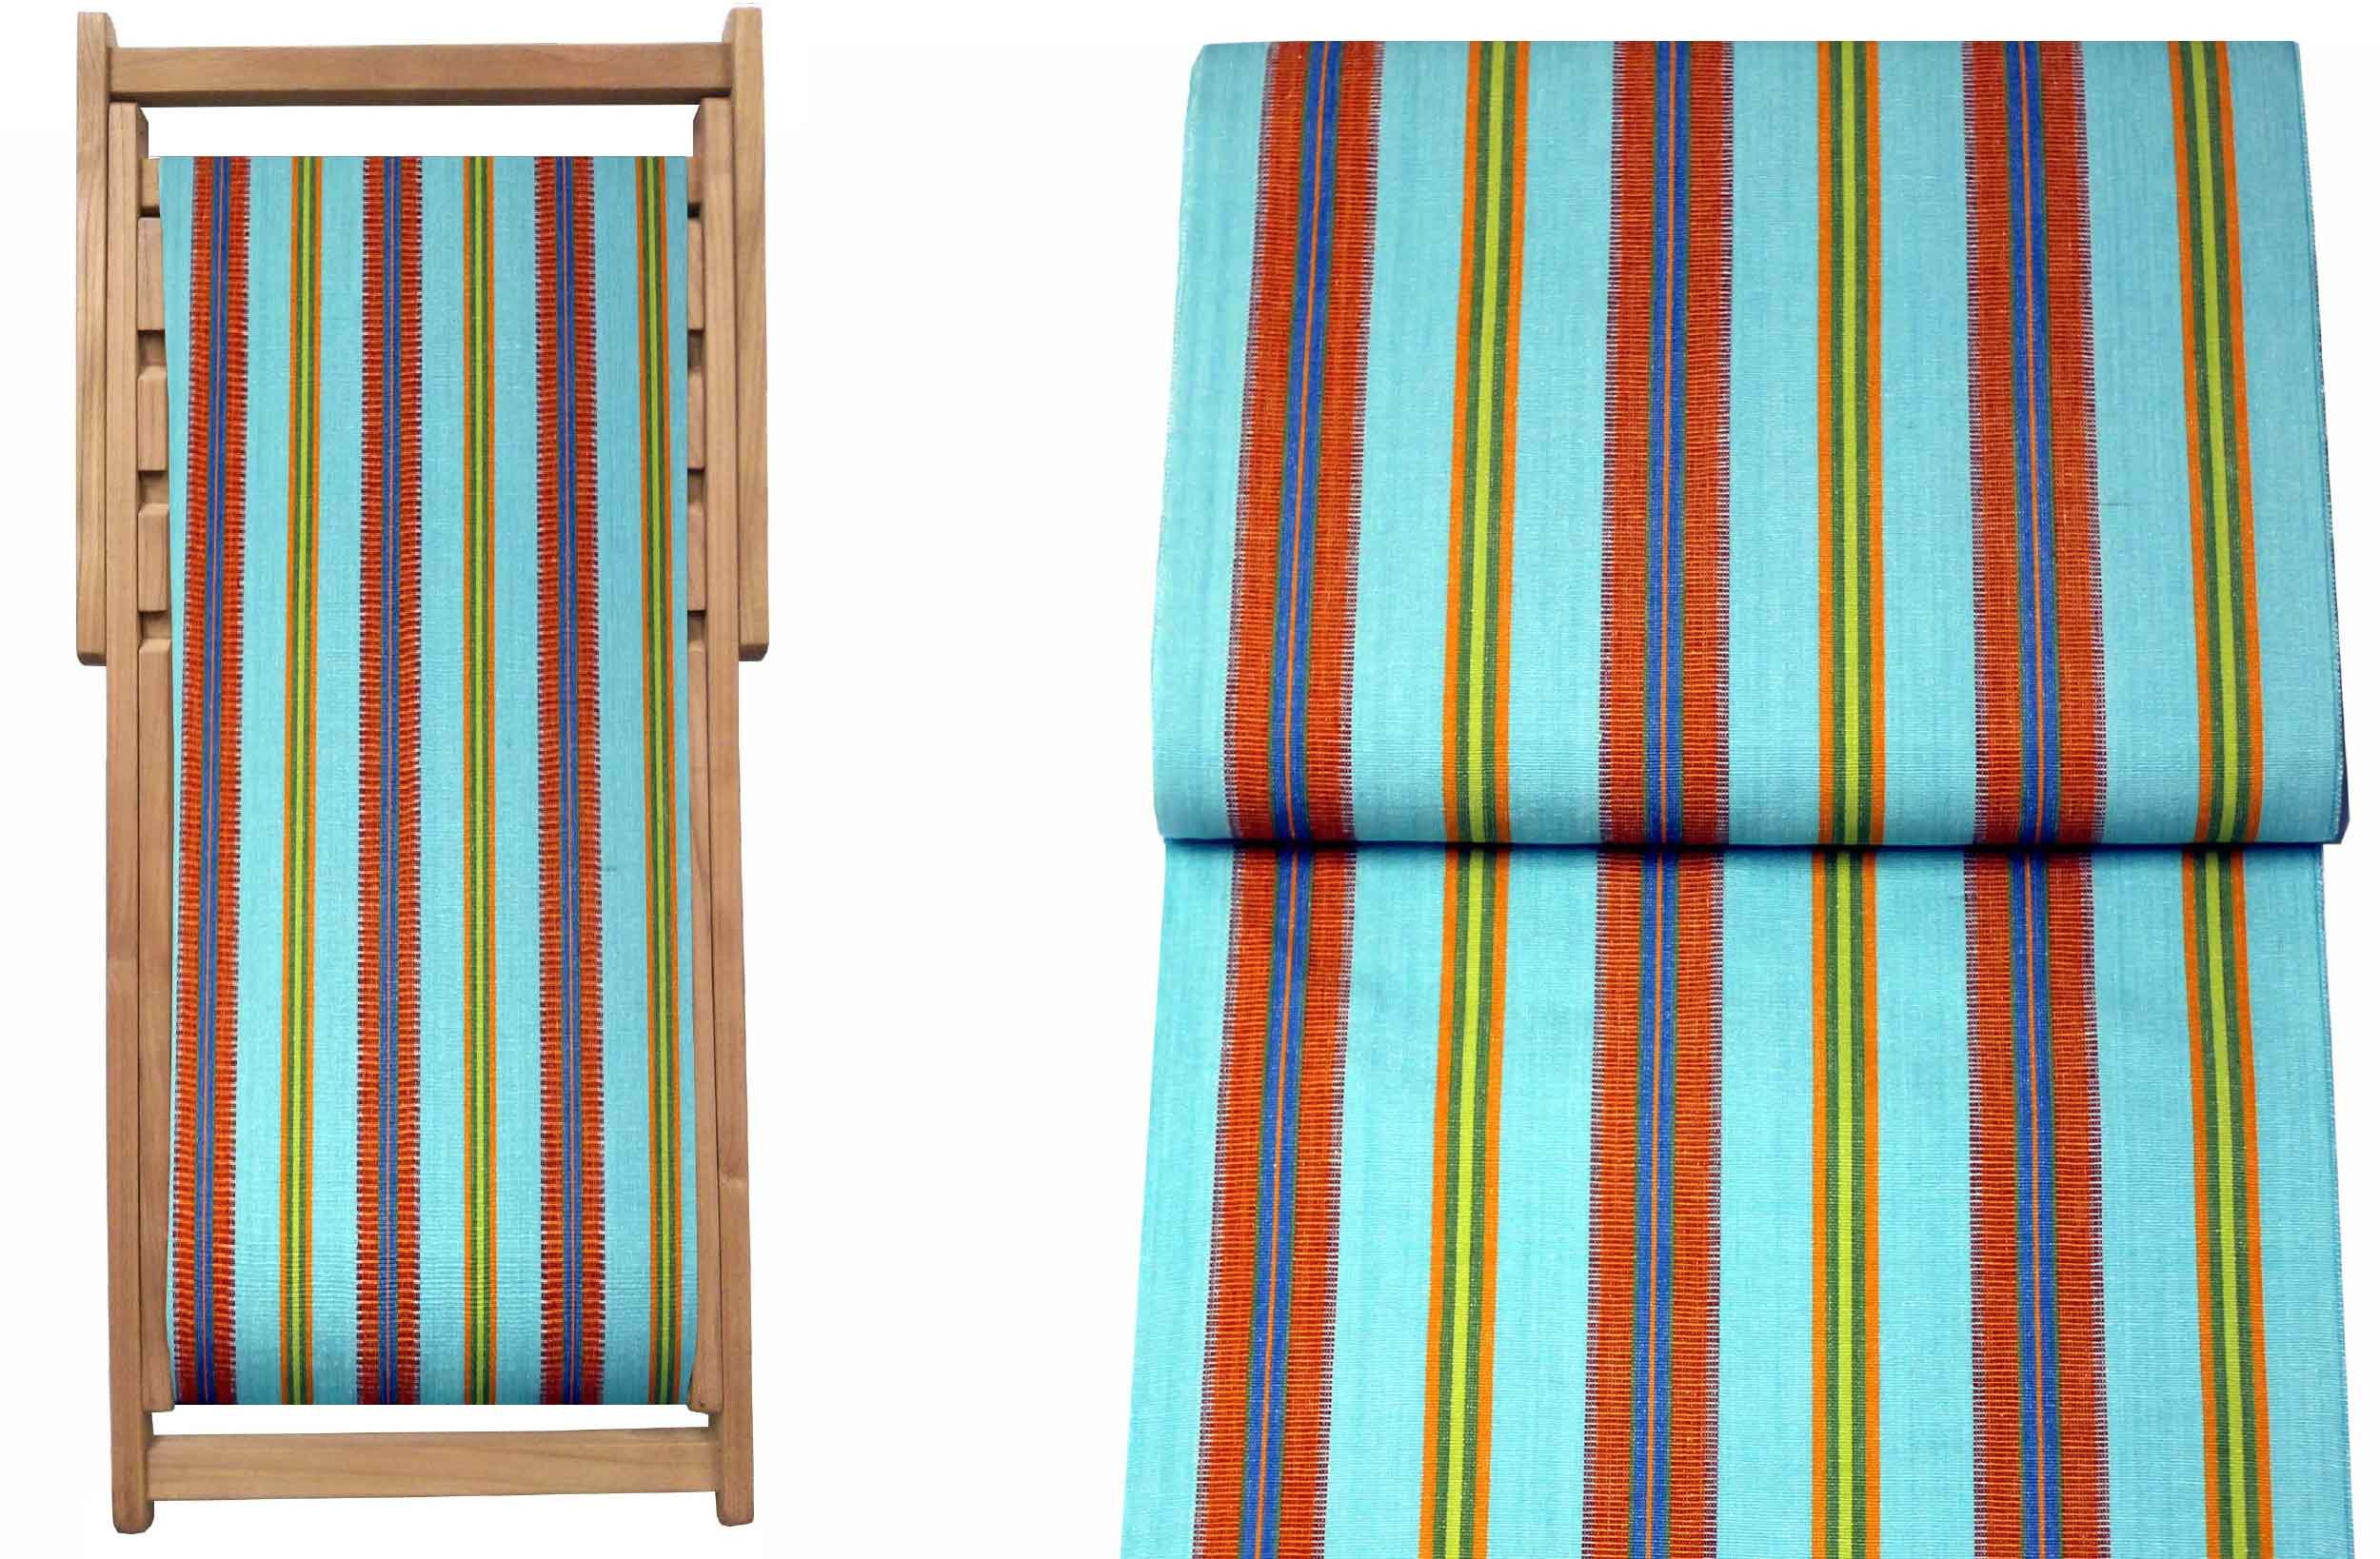 Teak Deck Chairs turquoise, terracotta, blue stripes